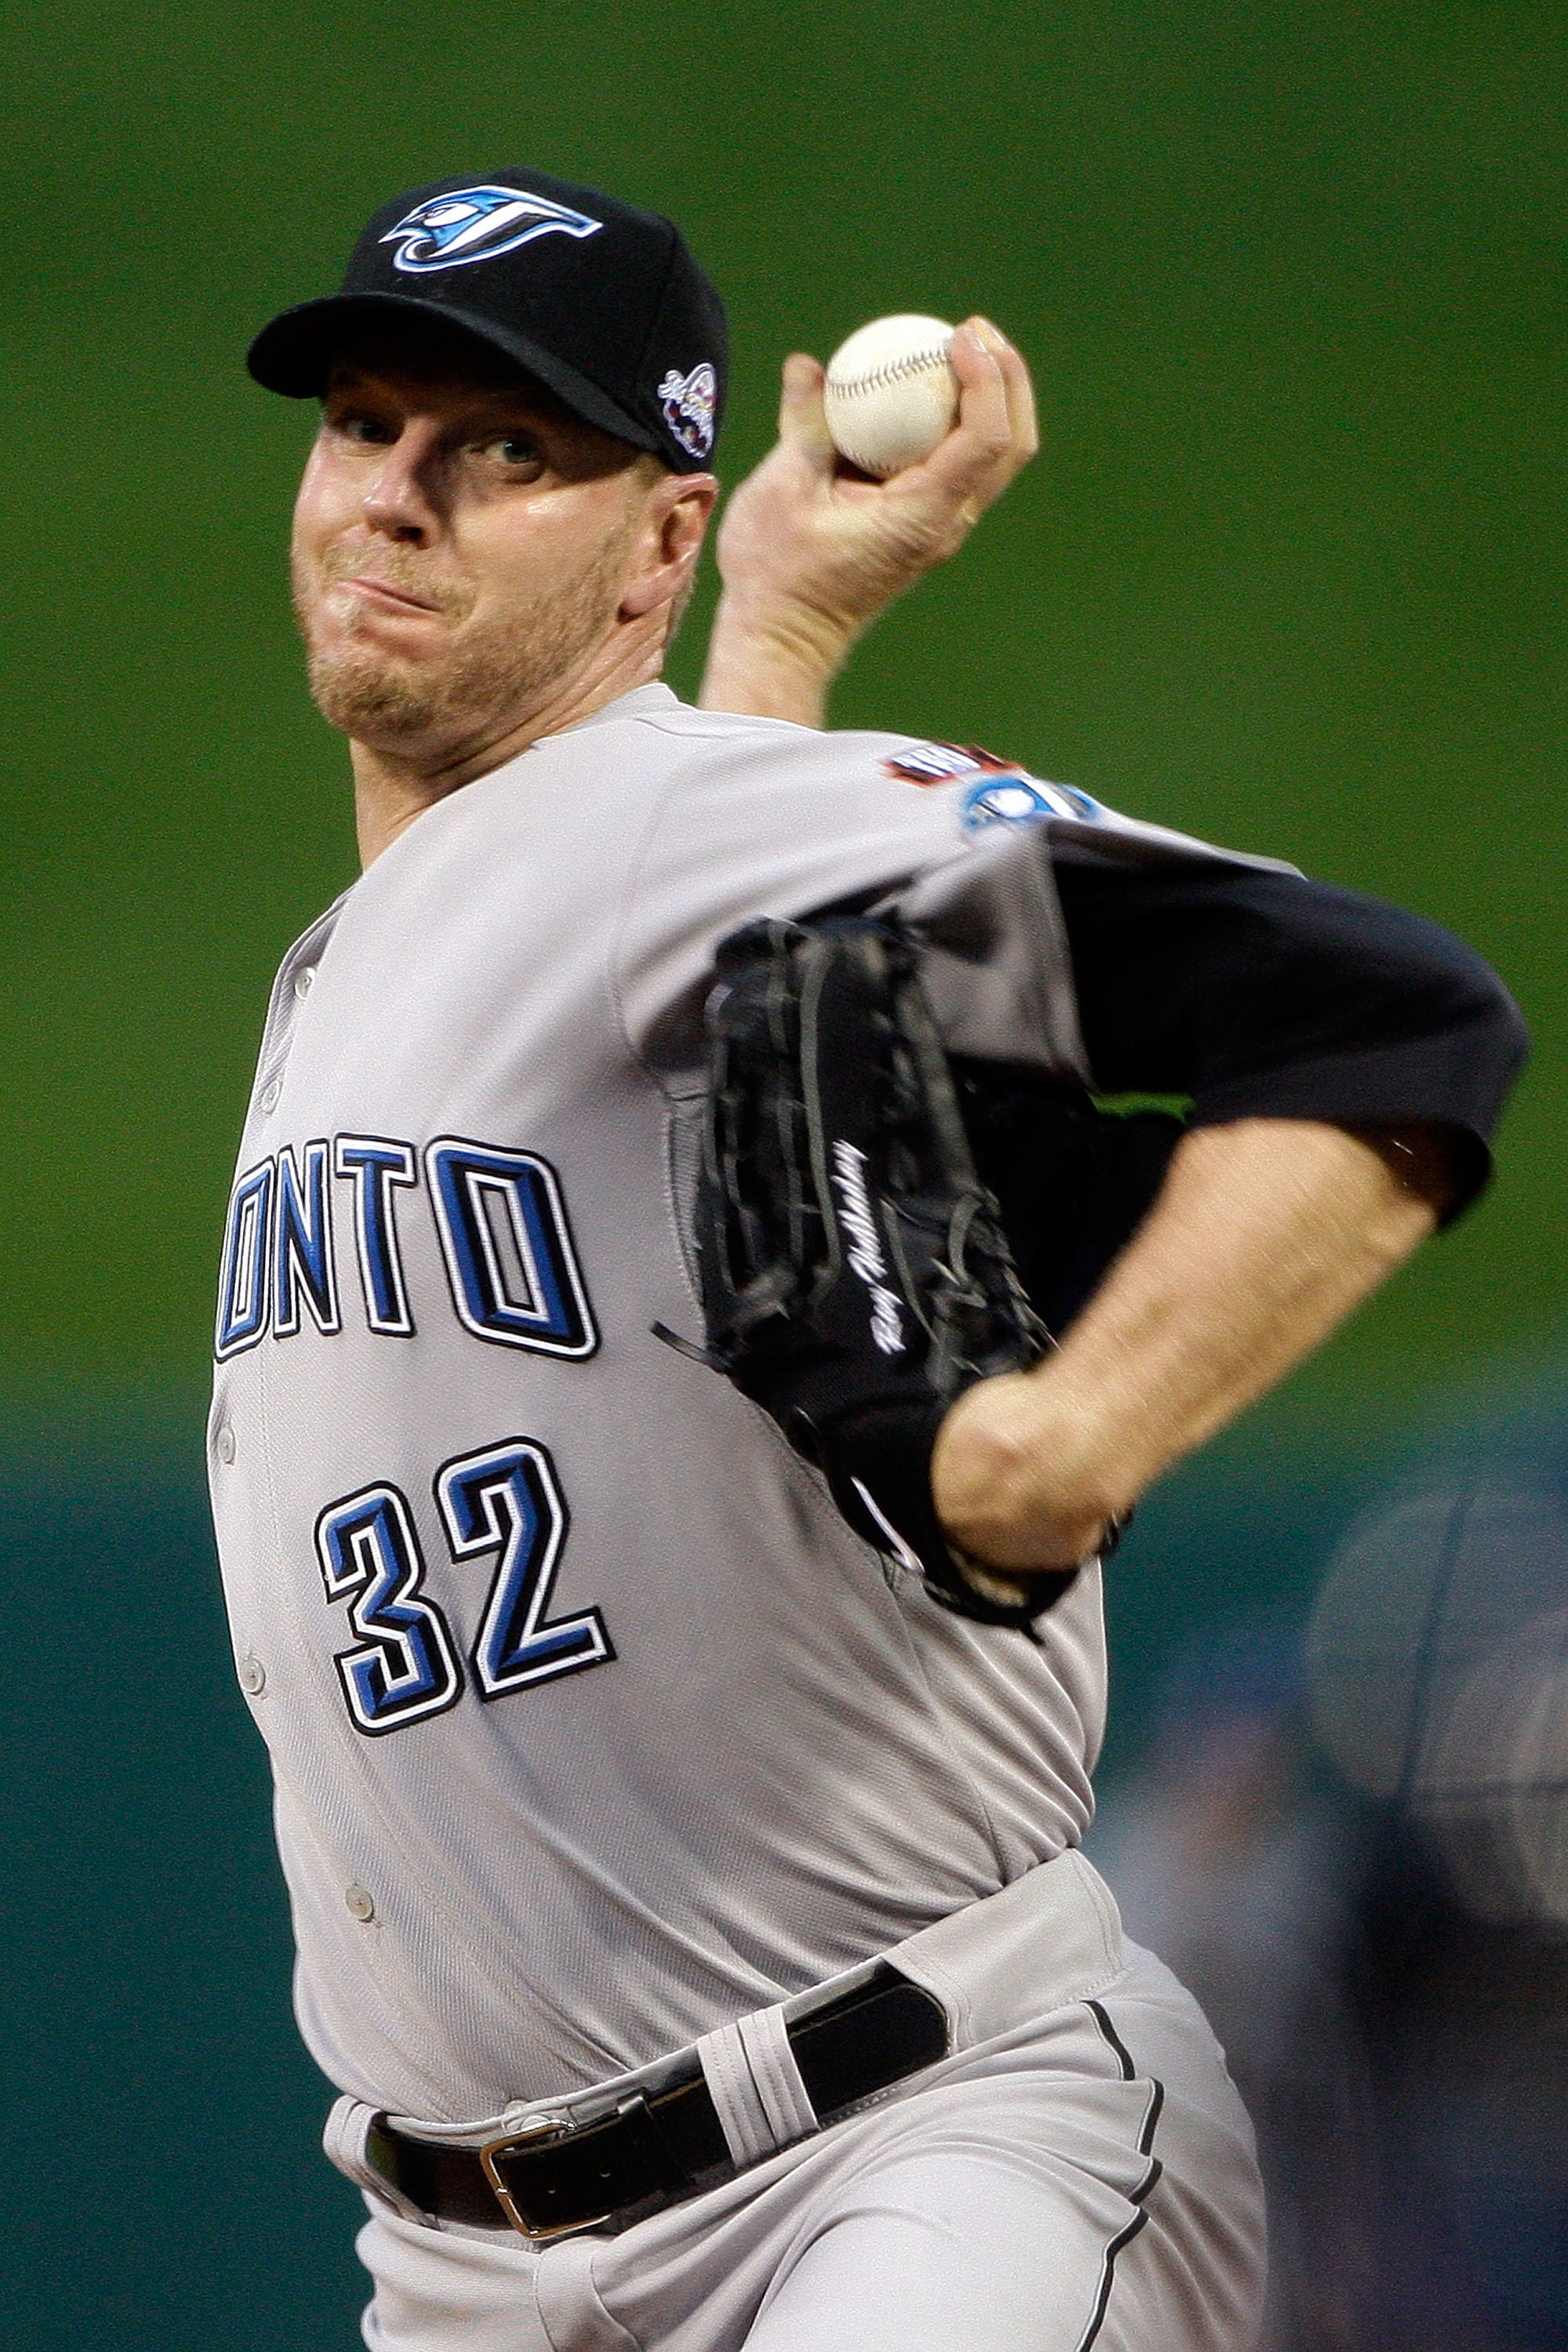 ST LOUIS, MO - JULY 14:  American League All-Star Roy Halladay of the Toronto Blue Jays pitches during the 2009 MLB All-Star Game at Busch Stadium on July 14, 2009 in St Louis, Missouri.  (Photo by Morry Gash-Pool/Getty Images)